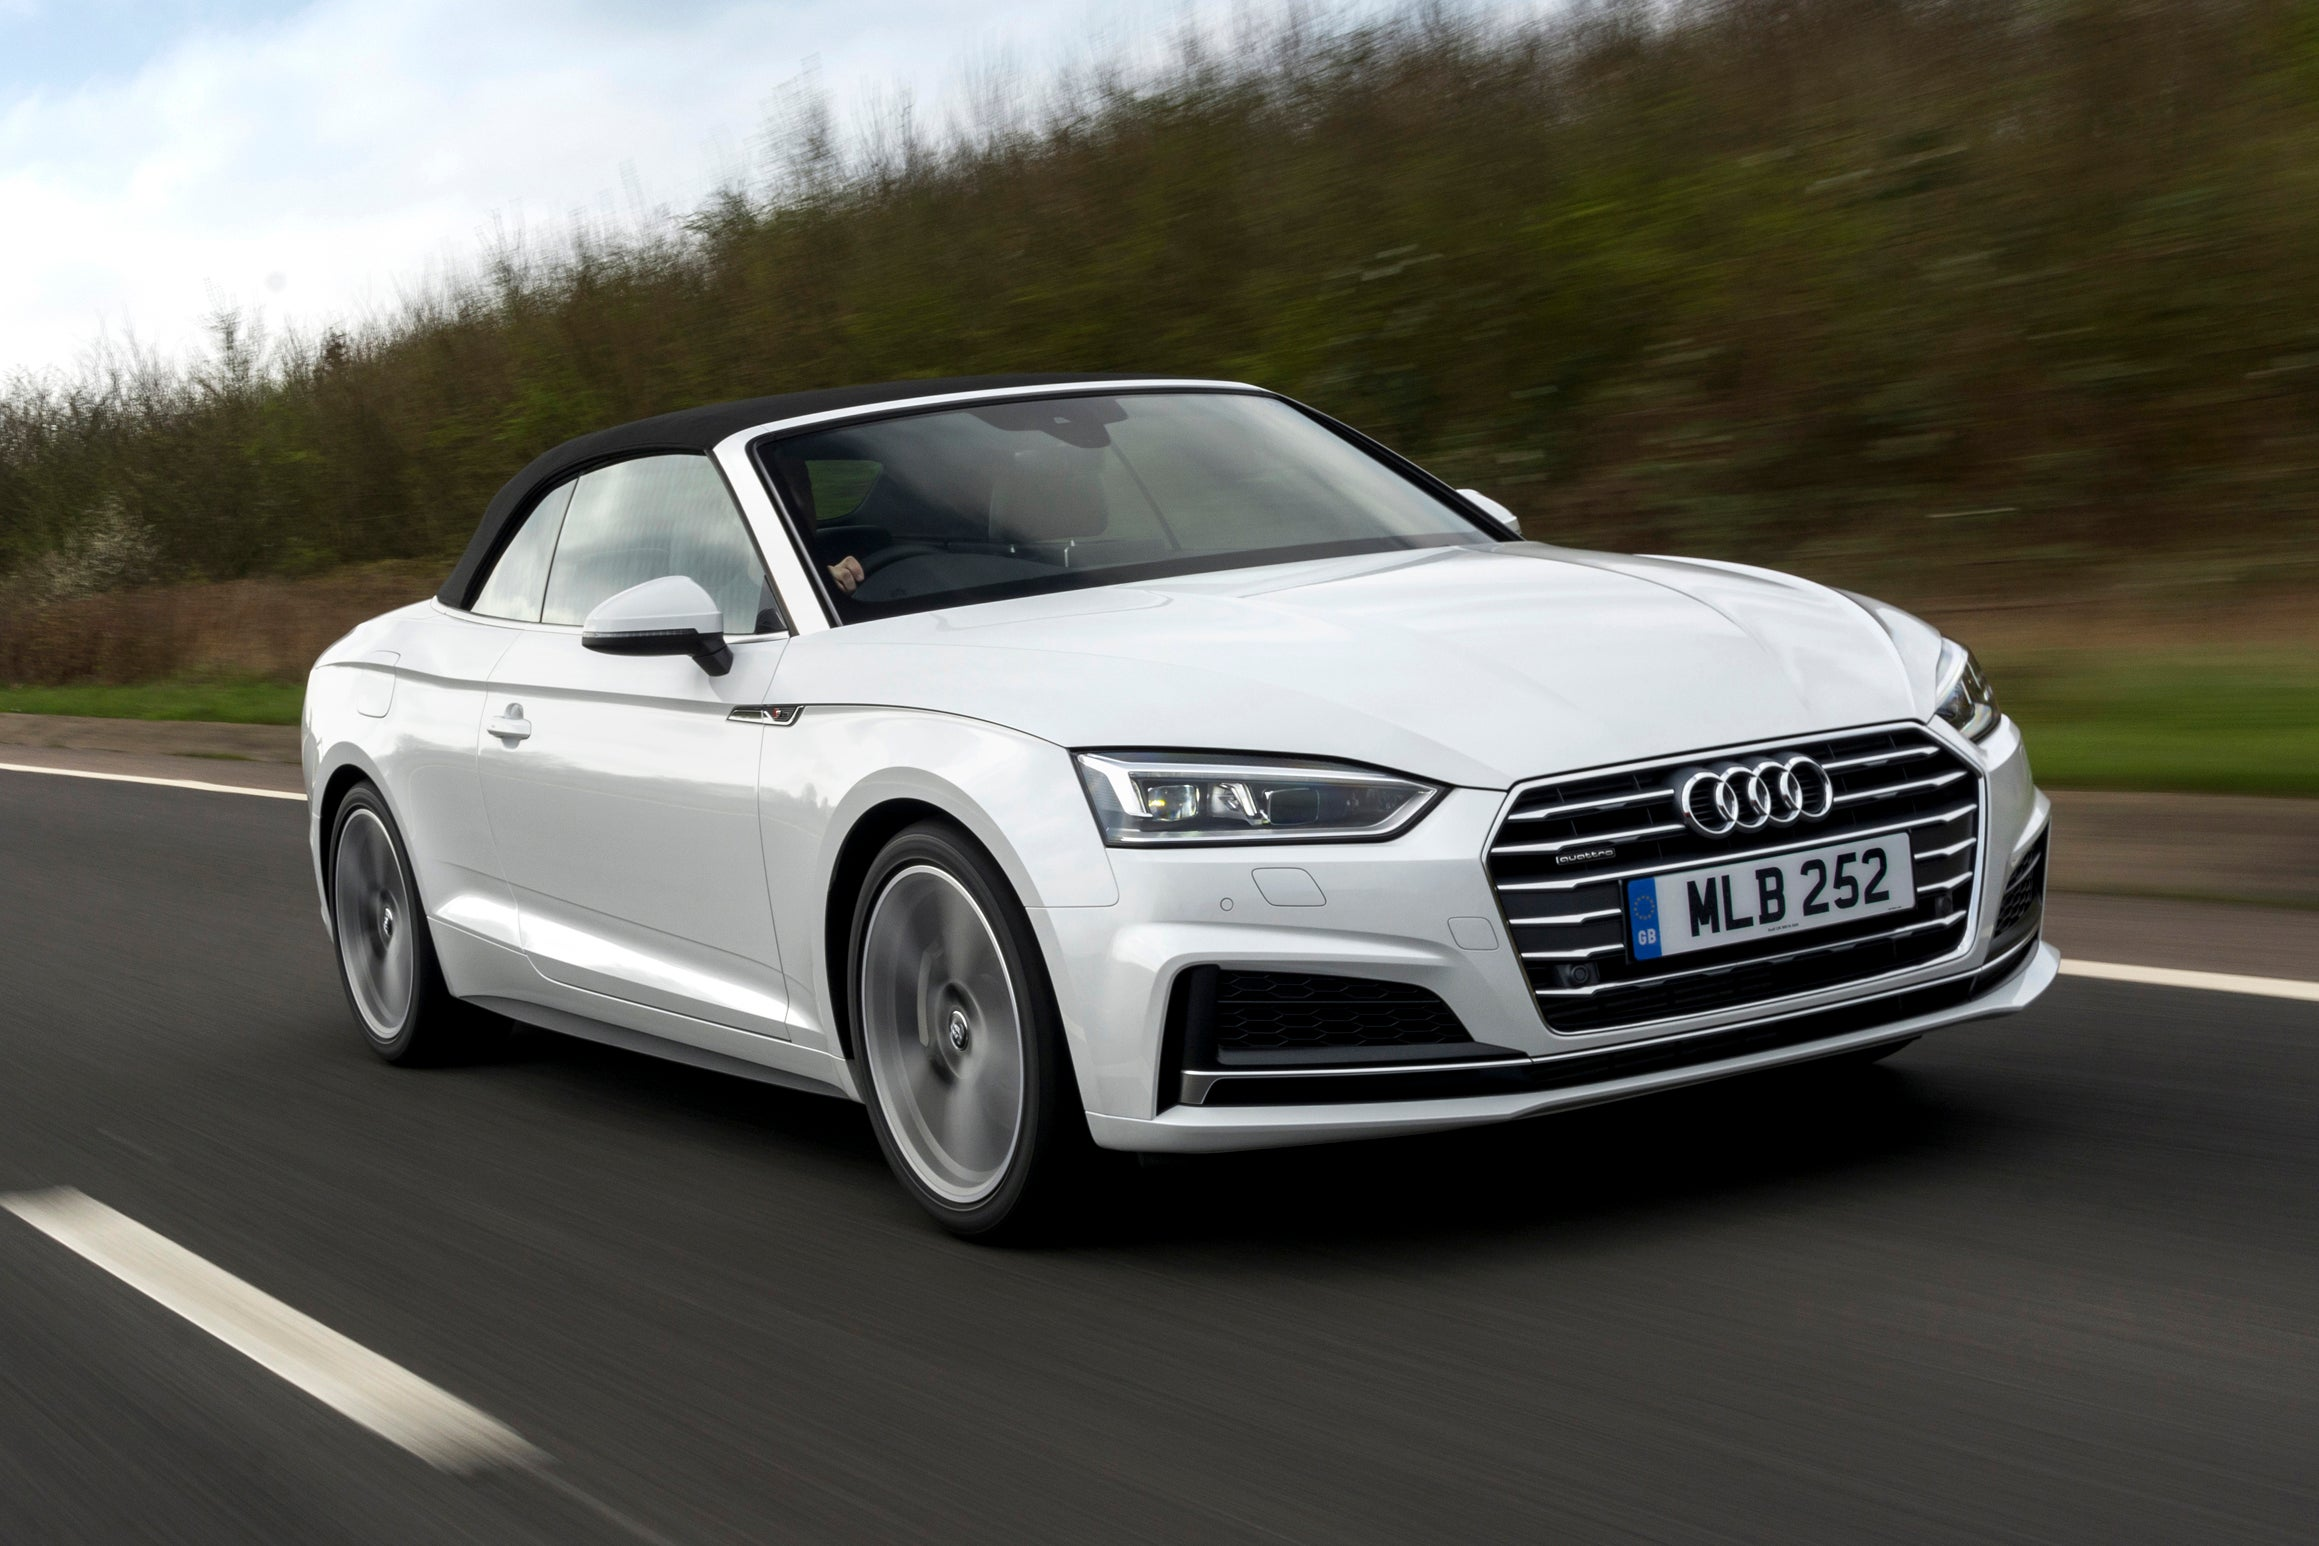 Audi A5 Cabriolet Driving Front